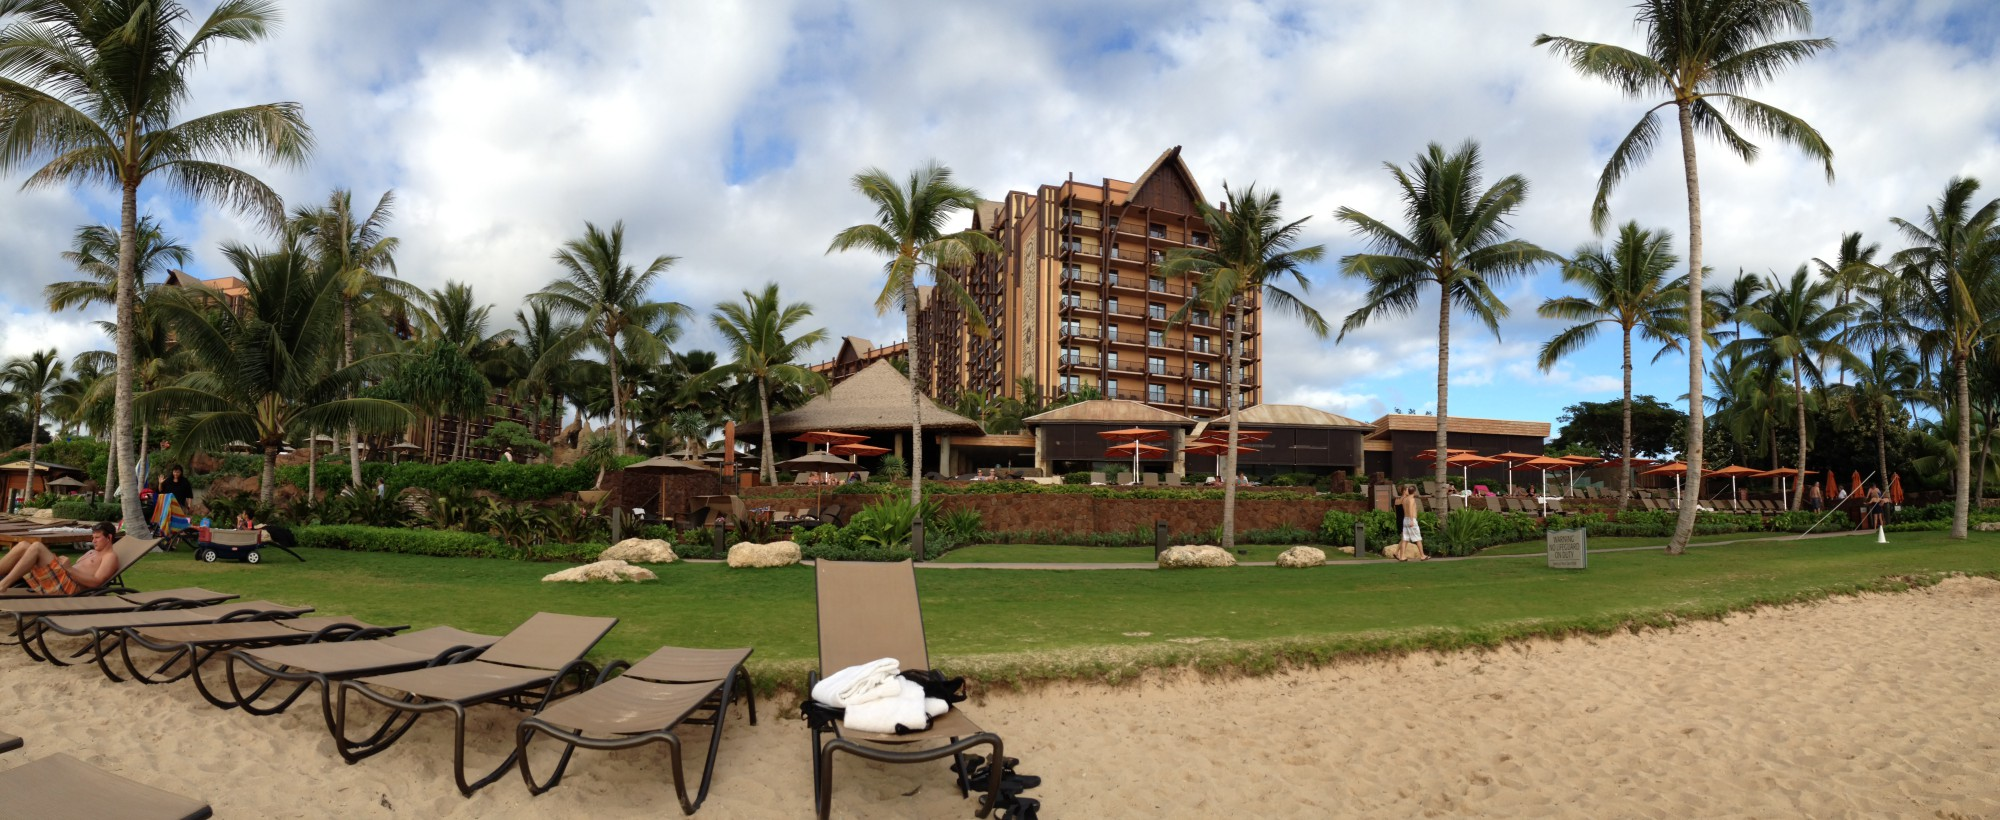 The beautiful Disney Aulani Property in Hawaii